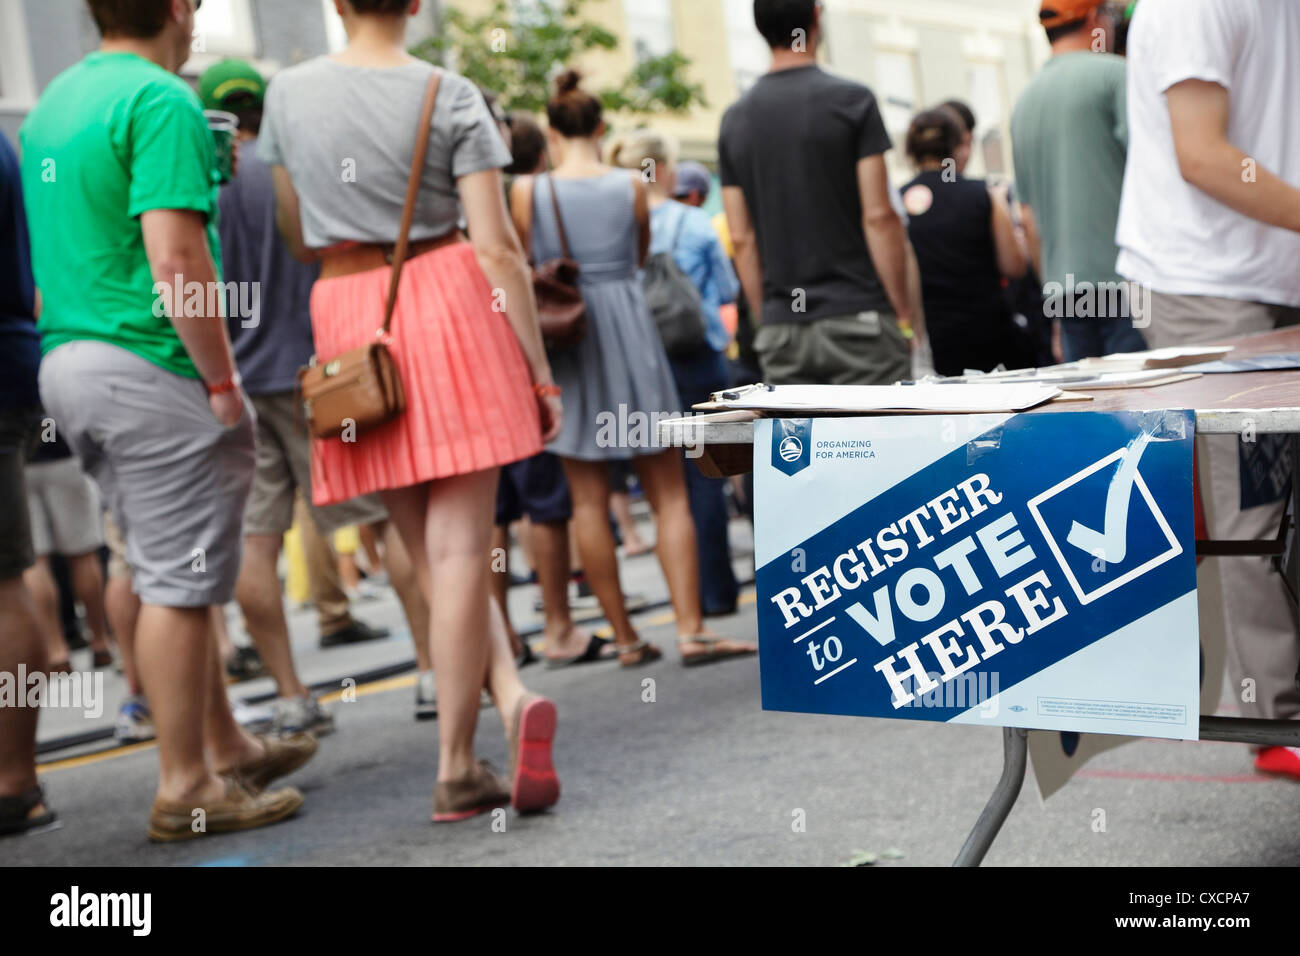 Voter registration table at Hopscotch Music Festival, Raleigh, North Carolina, USA - Stock Image